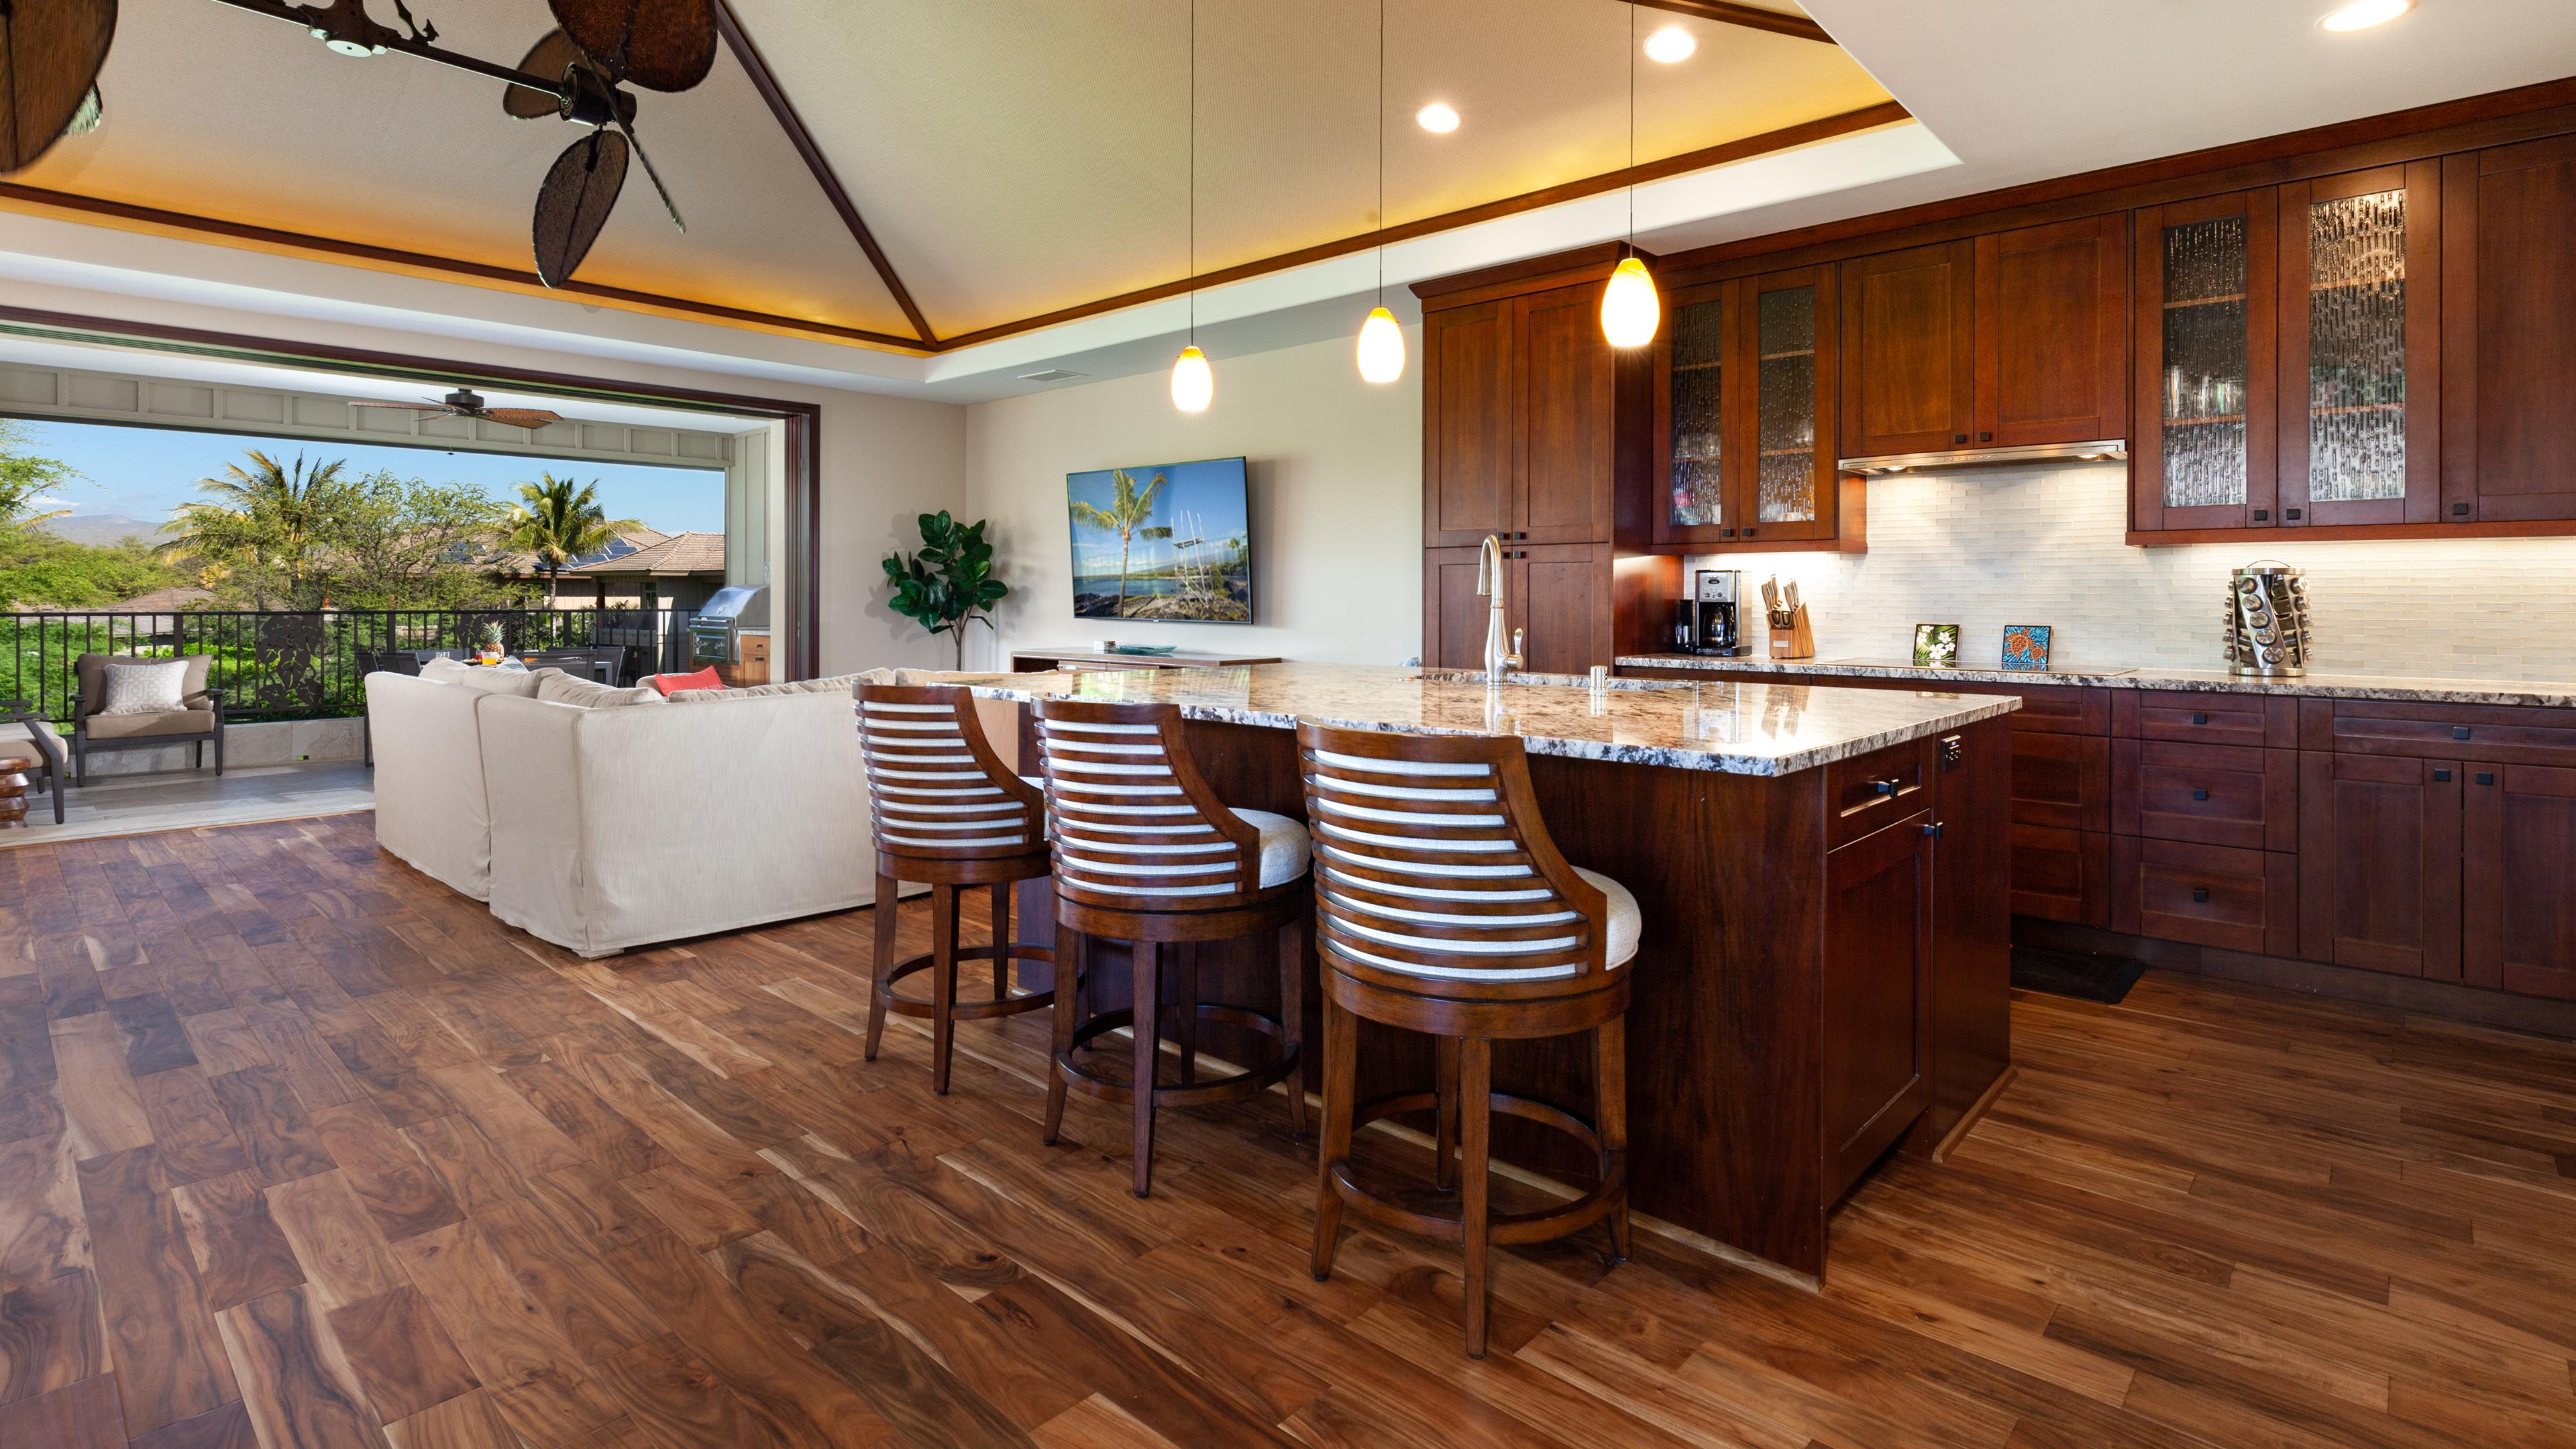 Mauna Kea Sunrise has a large open concept main floor living room including pocket doors that open up to a large covered outdoor living area called a Lanai